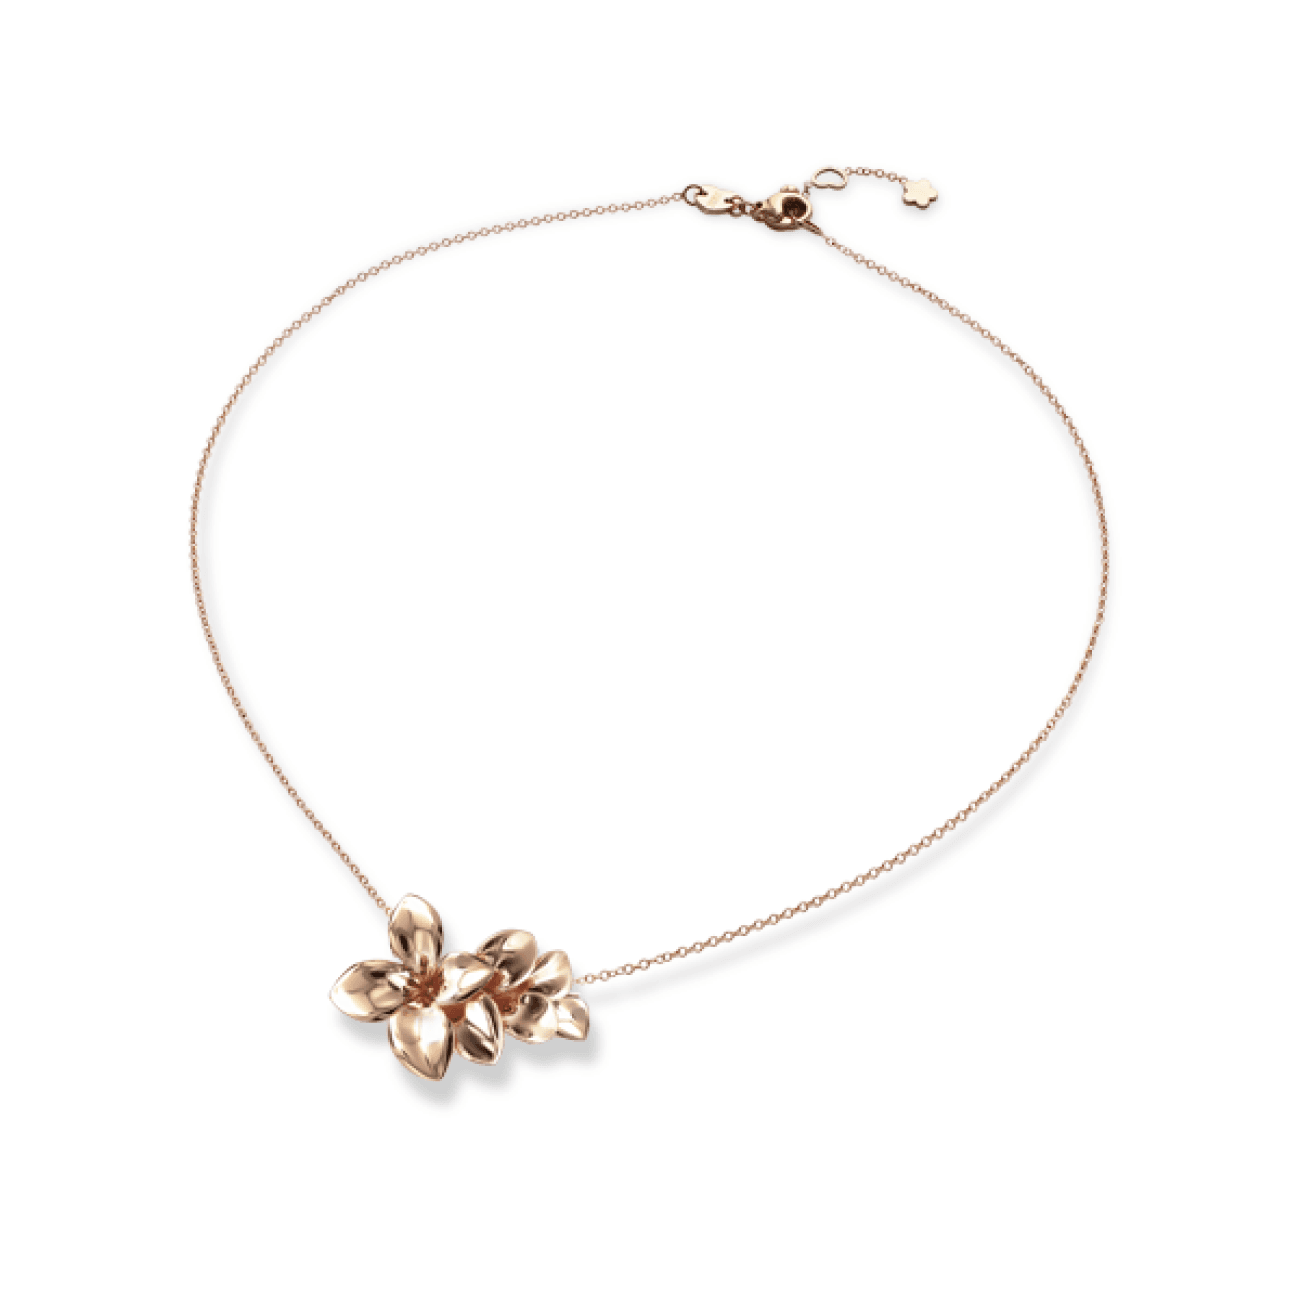 Pasquale Bruni Jewelry - Giardini Secreti Plain Flower And Petals | Manfredi Jewels